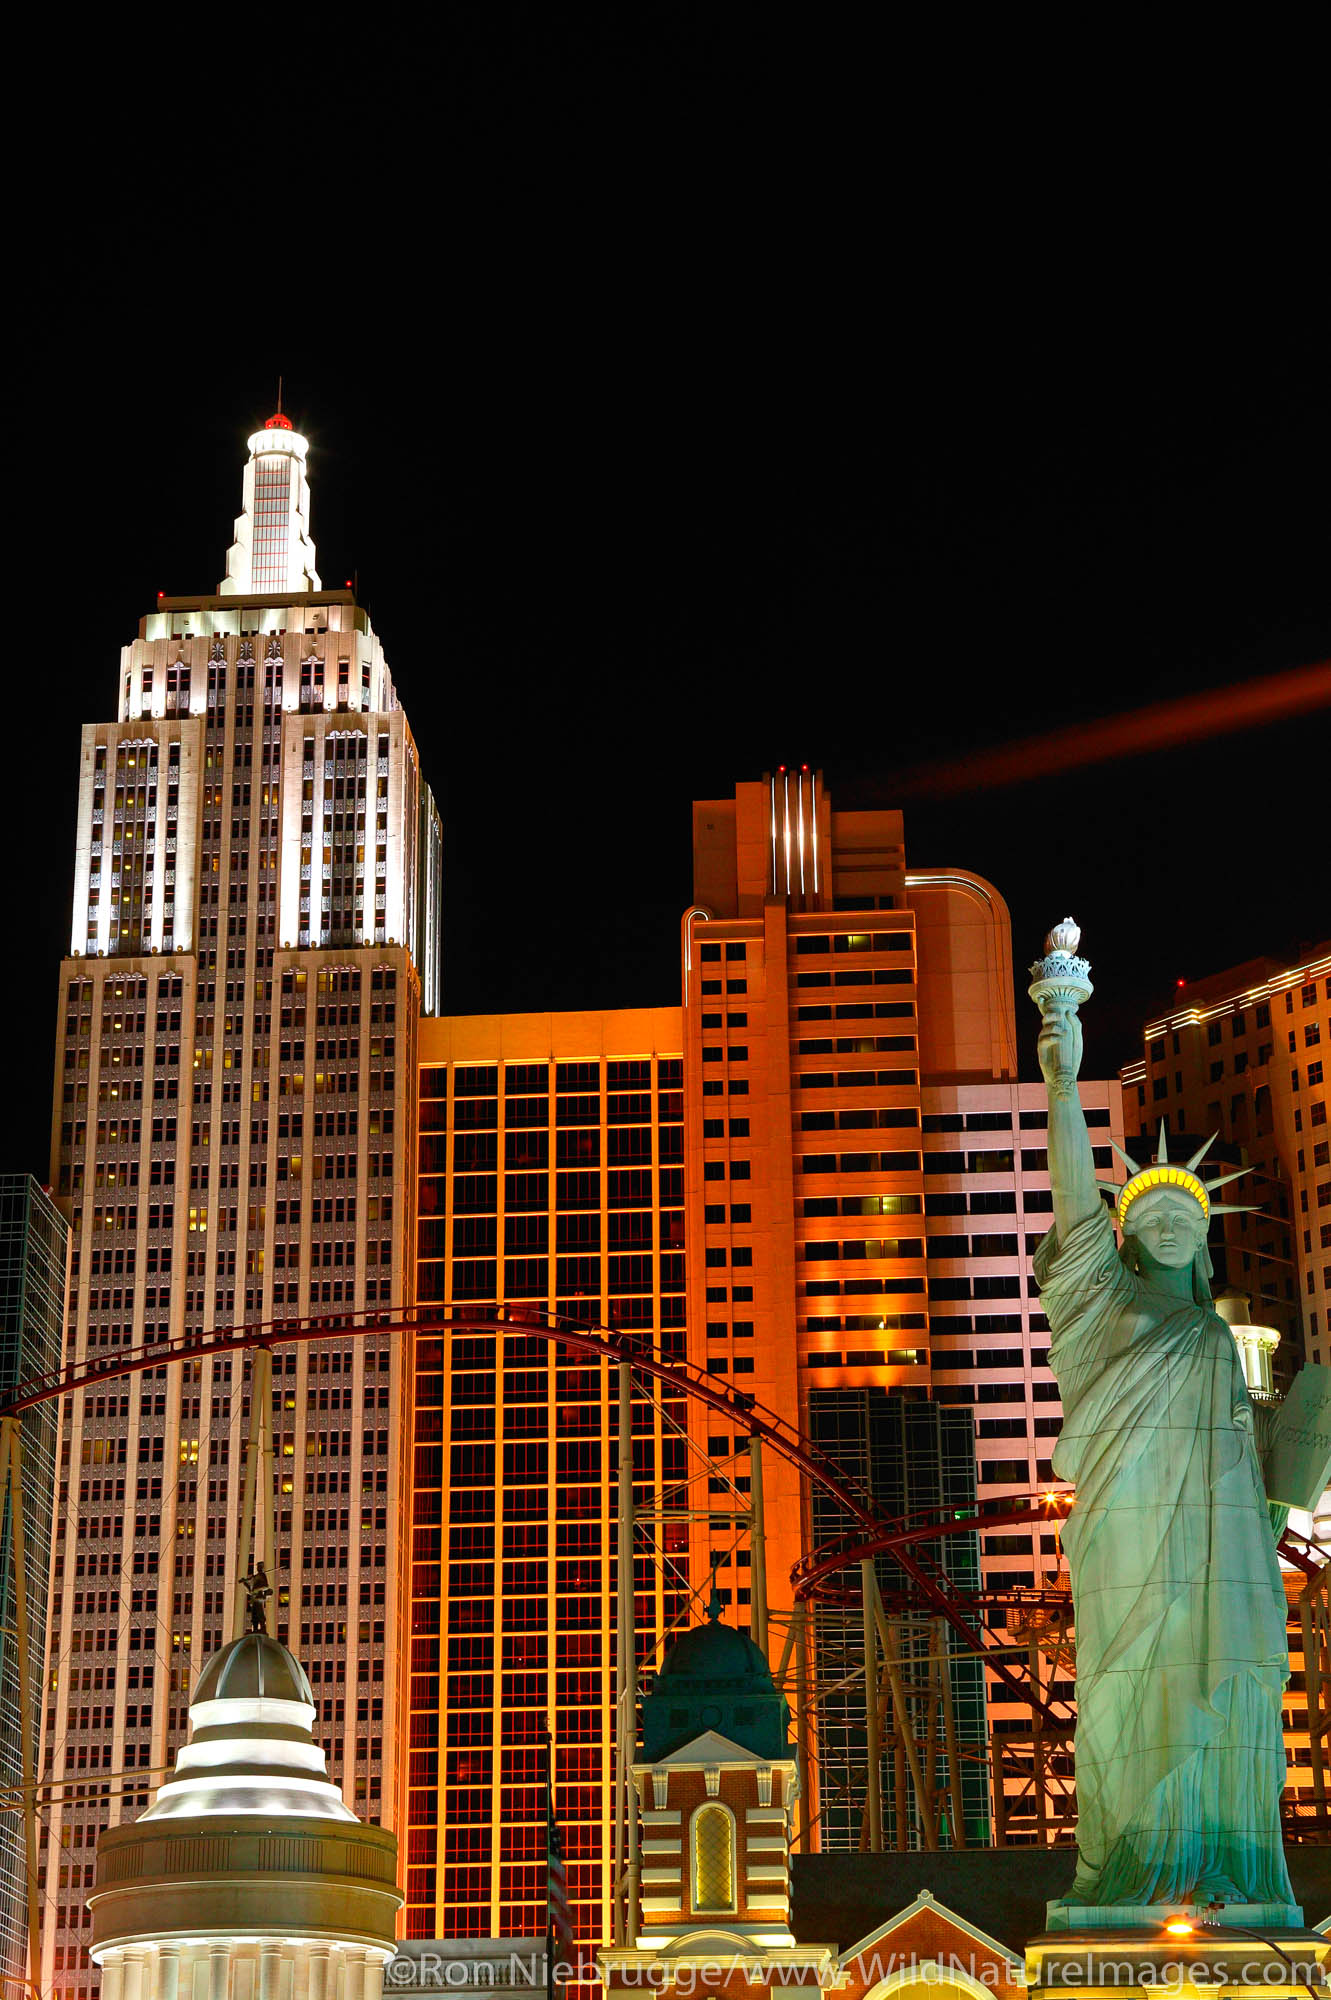 The New York New York casino and hotel on the strip in Las Vegas, Nevada.